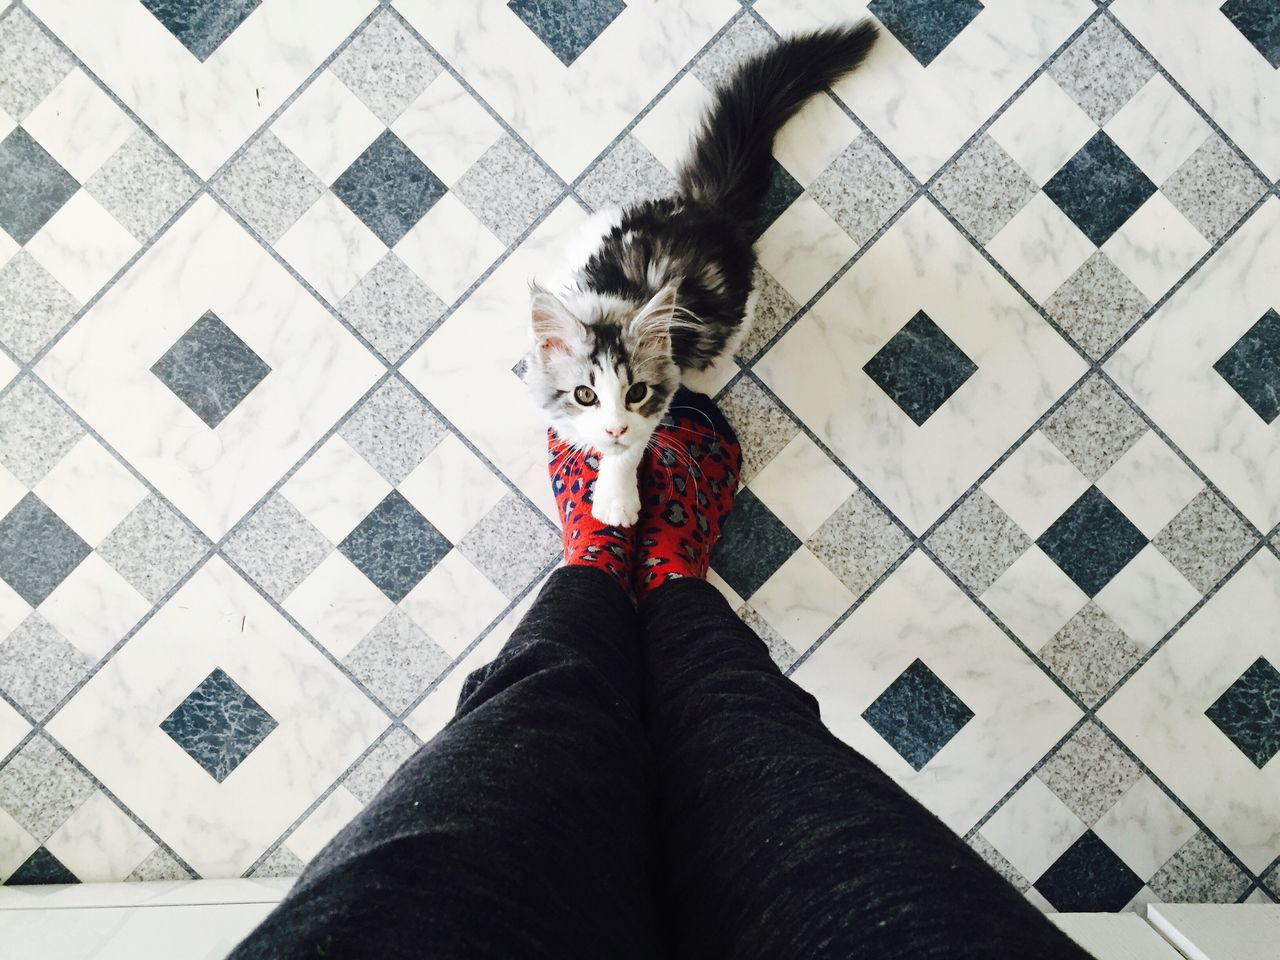 Pets Mainecoon Domestic Animals High Angle View One Animal Human Leg Personal Perspective Maine Coon Socks